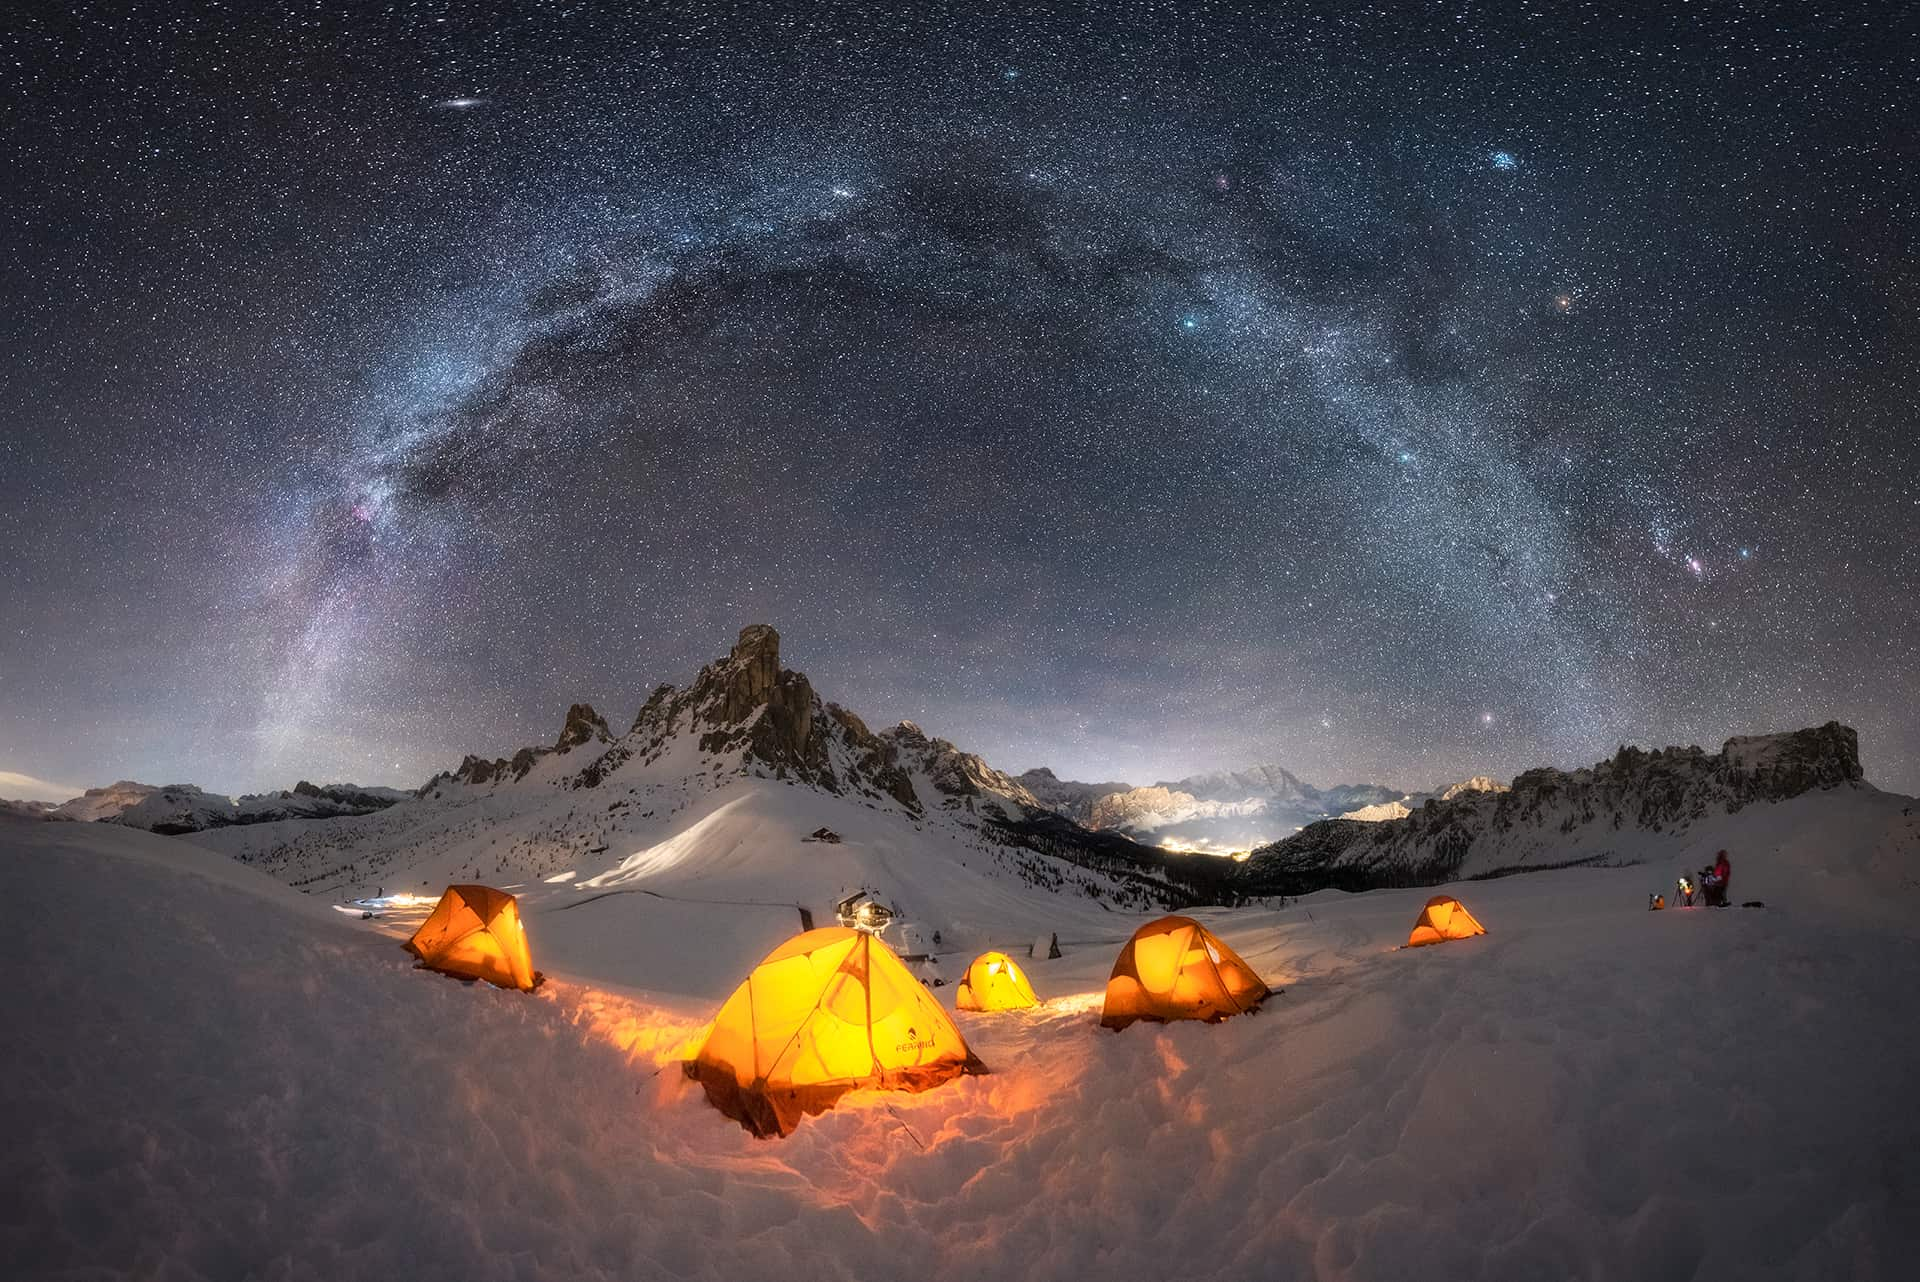 Best places to see the Milky Way in Europe